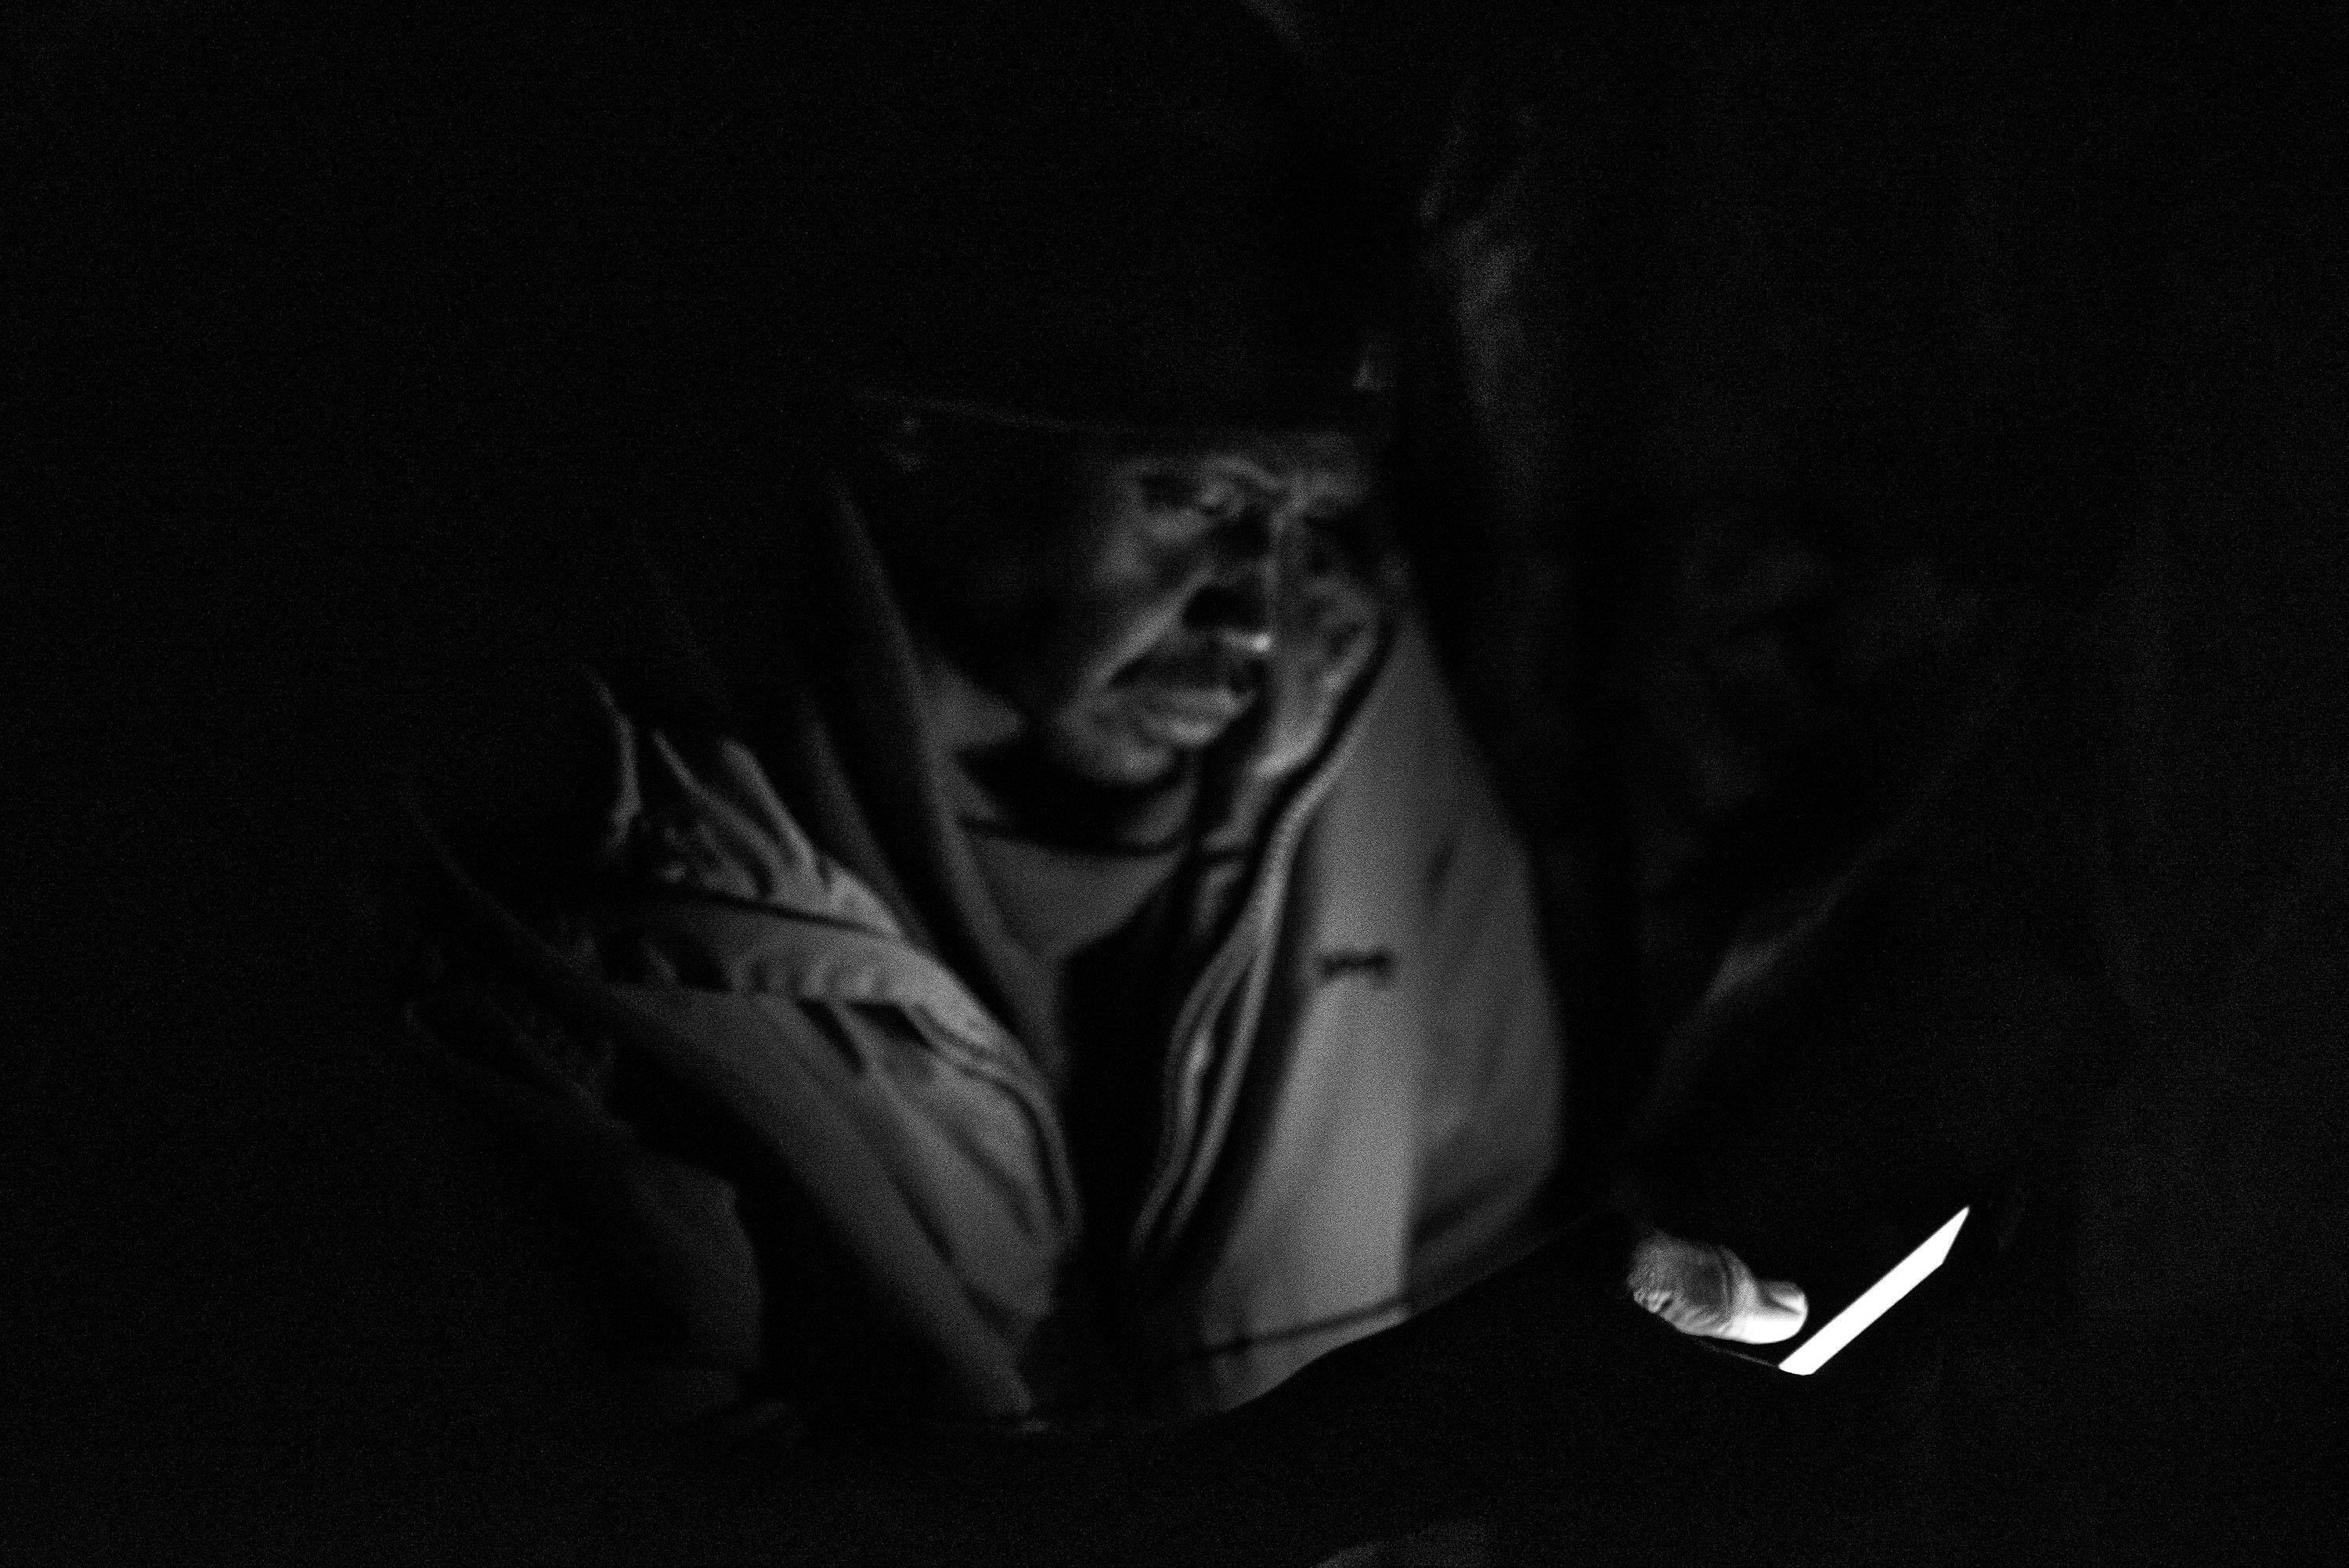 In the evening Ahmad stays in his shelter, using his phone to speak with relatives and friends.